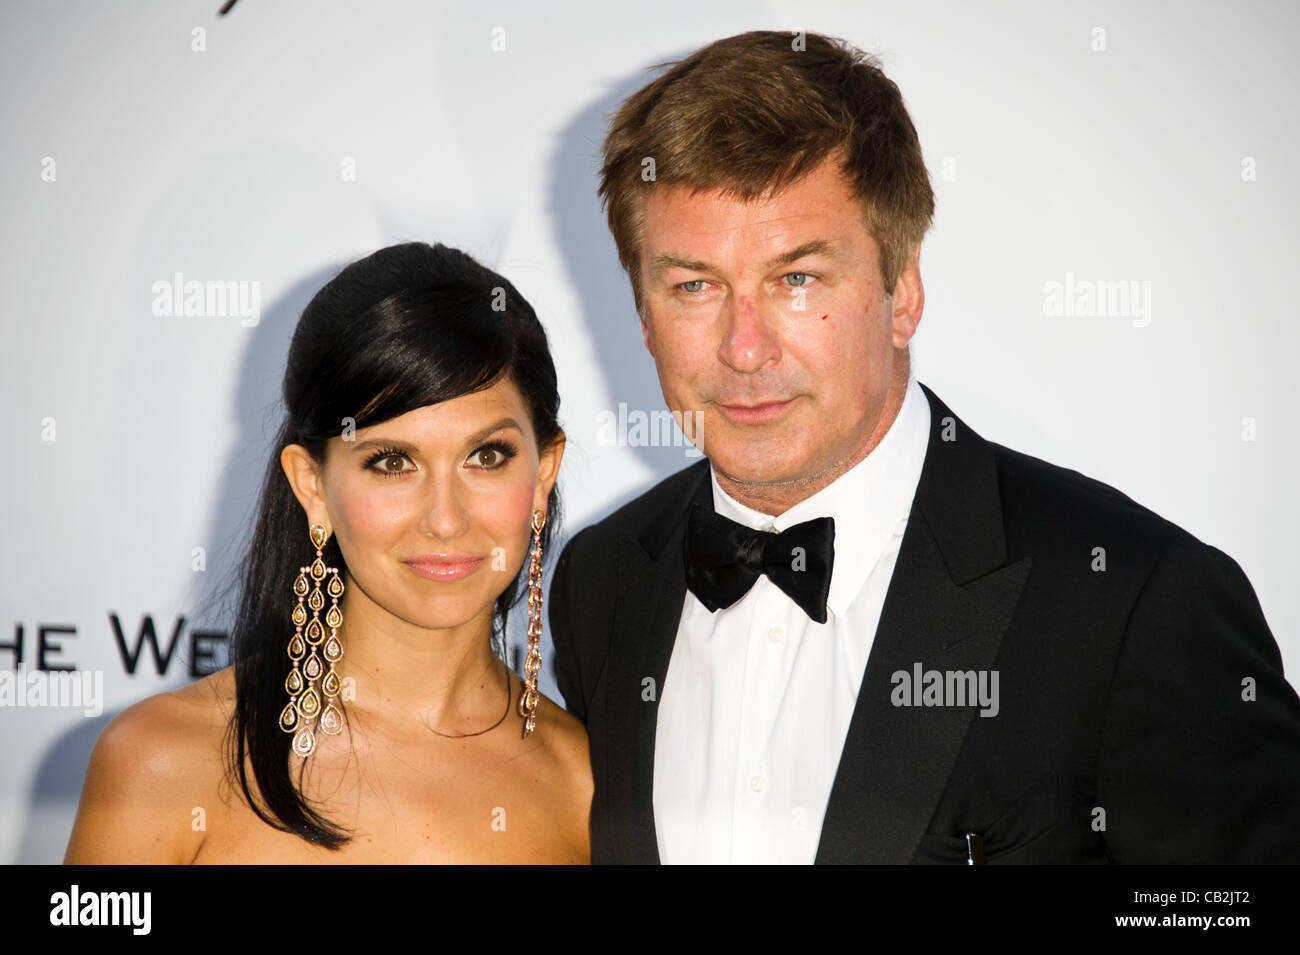 Alec Baldwin (actor) and girlfriend Hilaria Thomas at arrivals for the amfAR Cinema against AIDS charity auction Stock Photo